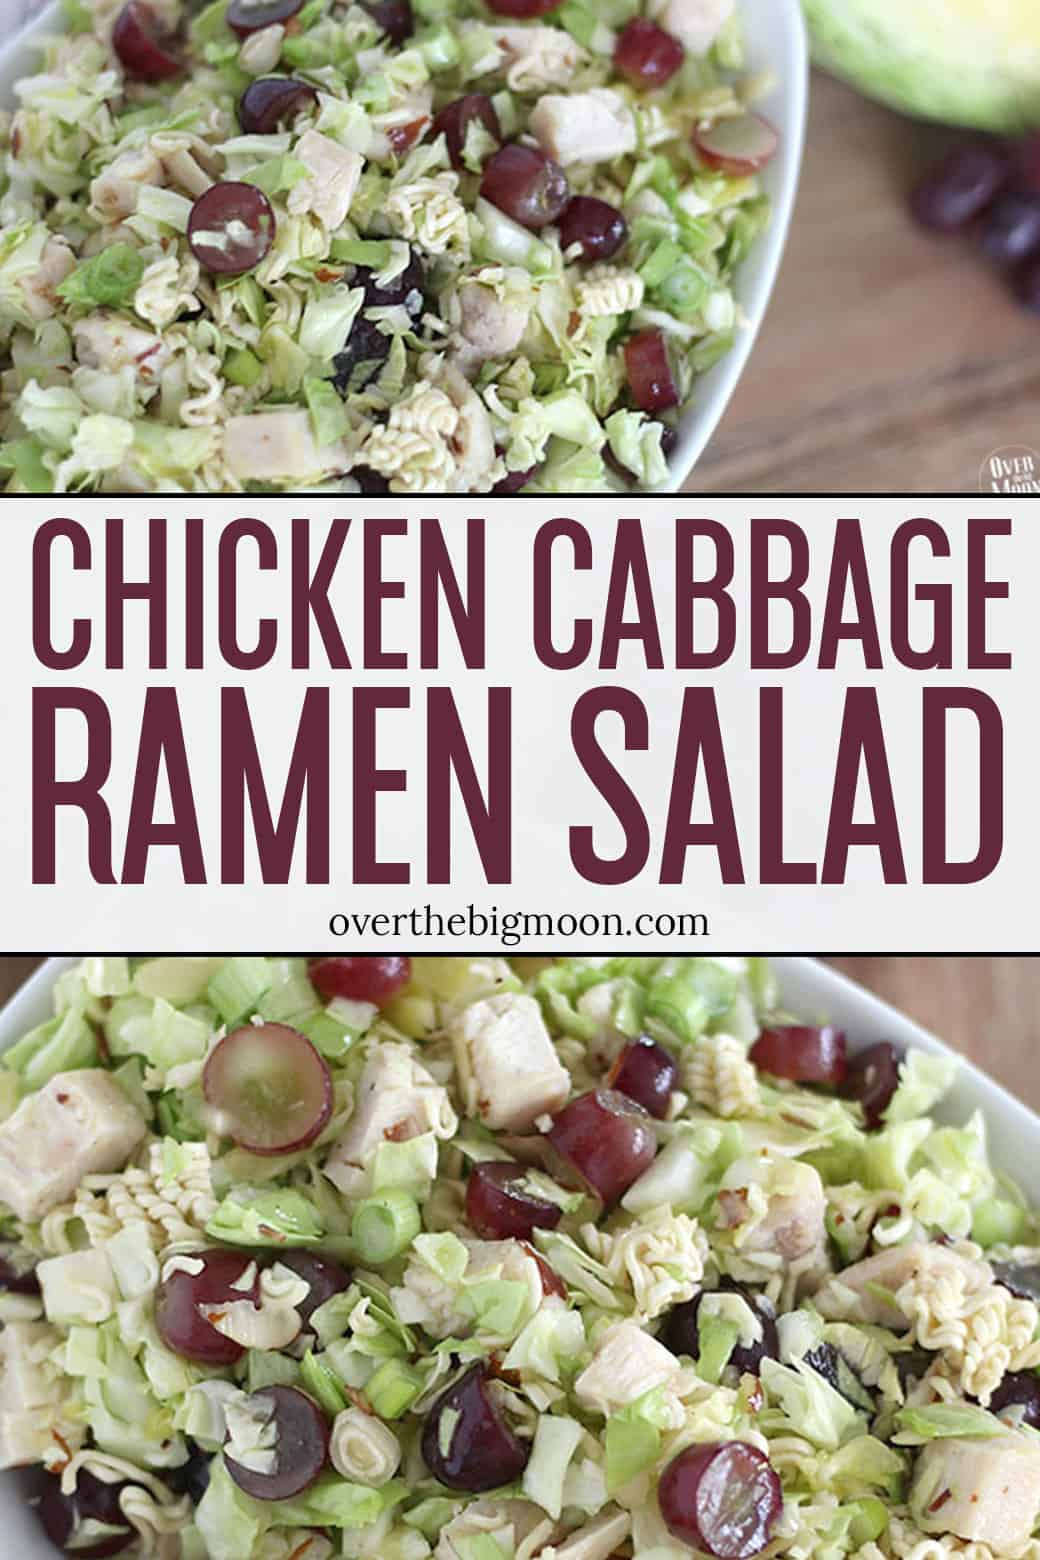 This Chicken Cabbage Ramen Salad is the perfect salad for all occasions! From overthebigmoon.com!